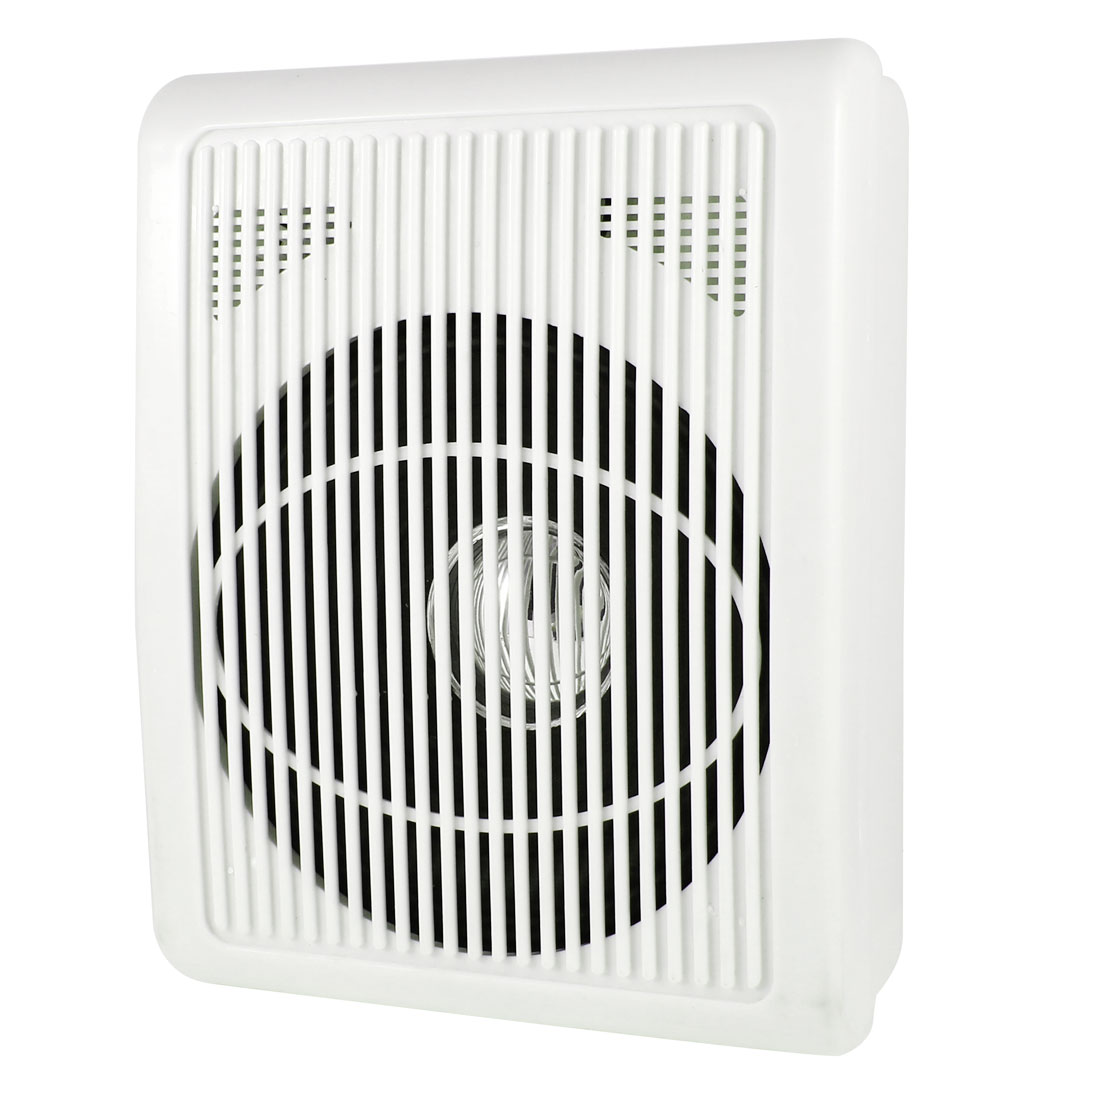 20x16cm Indoor White Plastic Shell Wall Surface Mount Speaker Box 3-5W 8Ohm